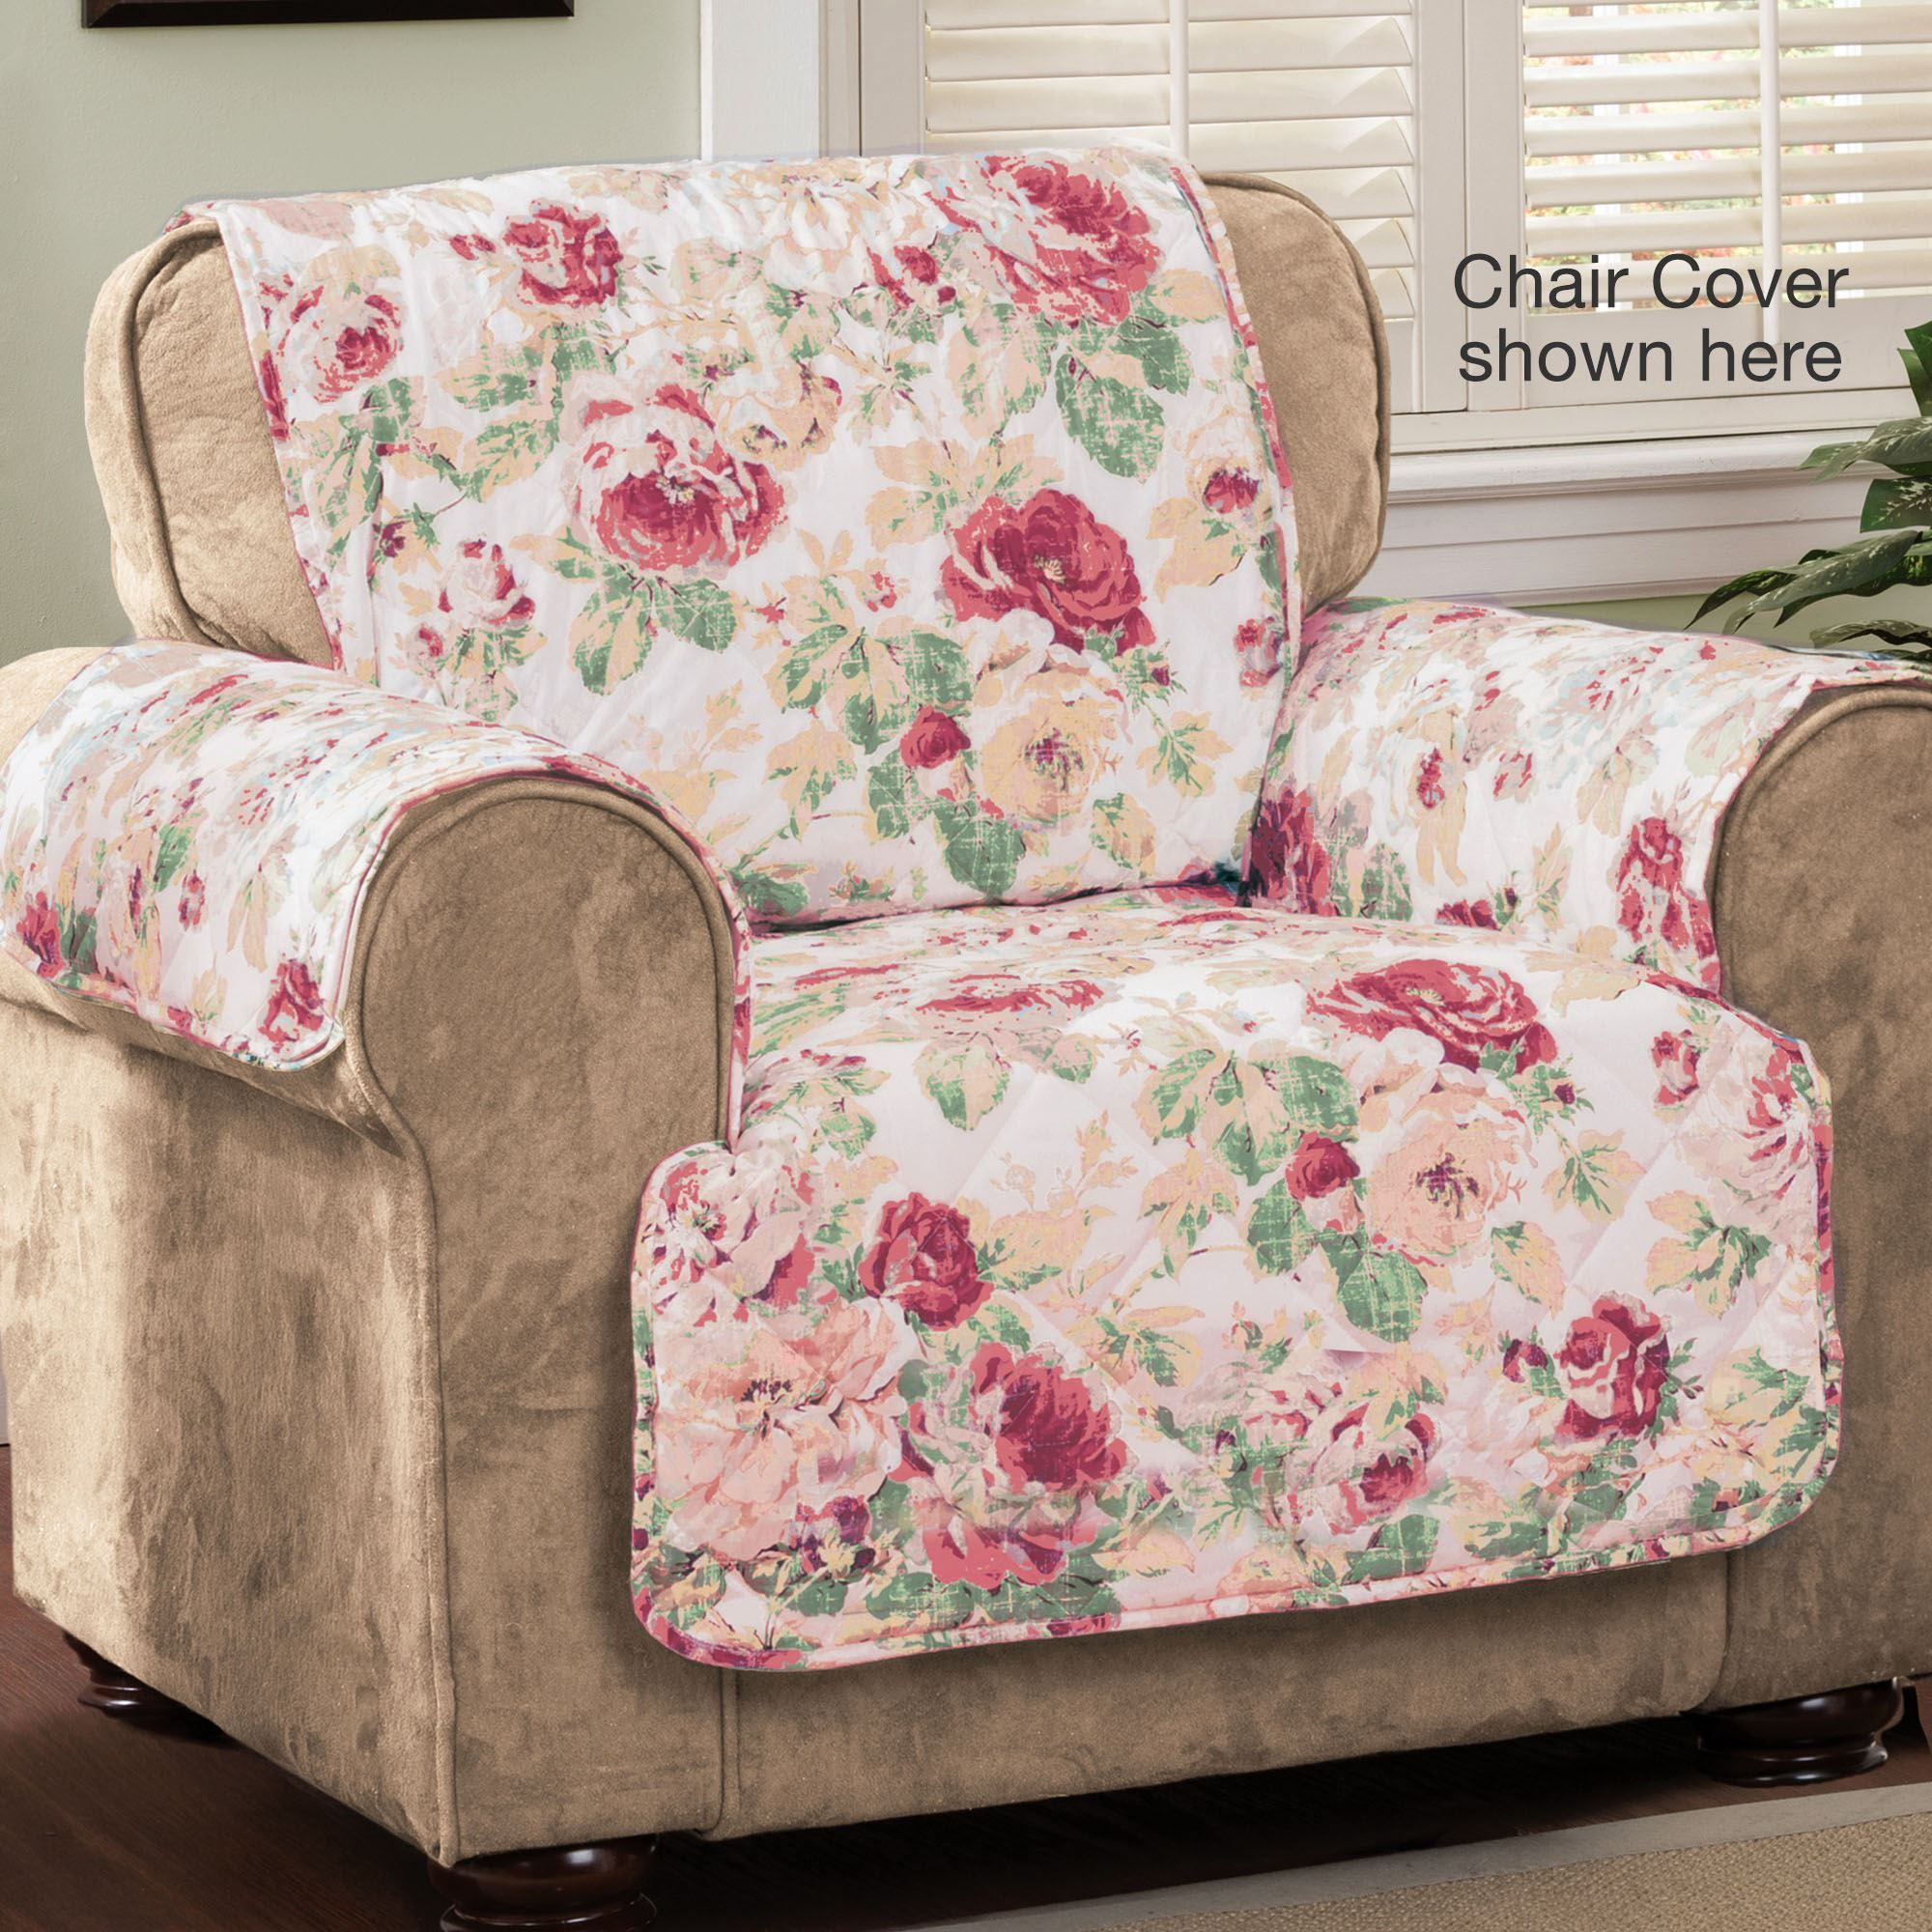 english floral tea rose quilted furniture protectors rh touchofclass com Tea Table and Chairs Chai Tea Powder